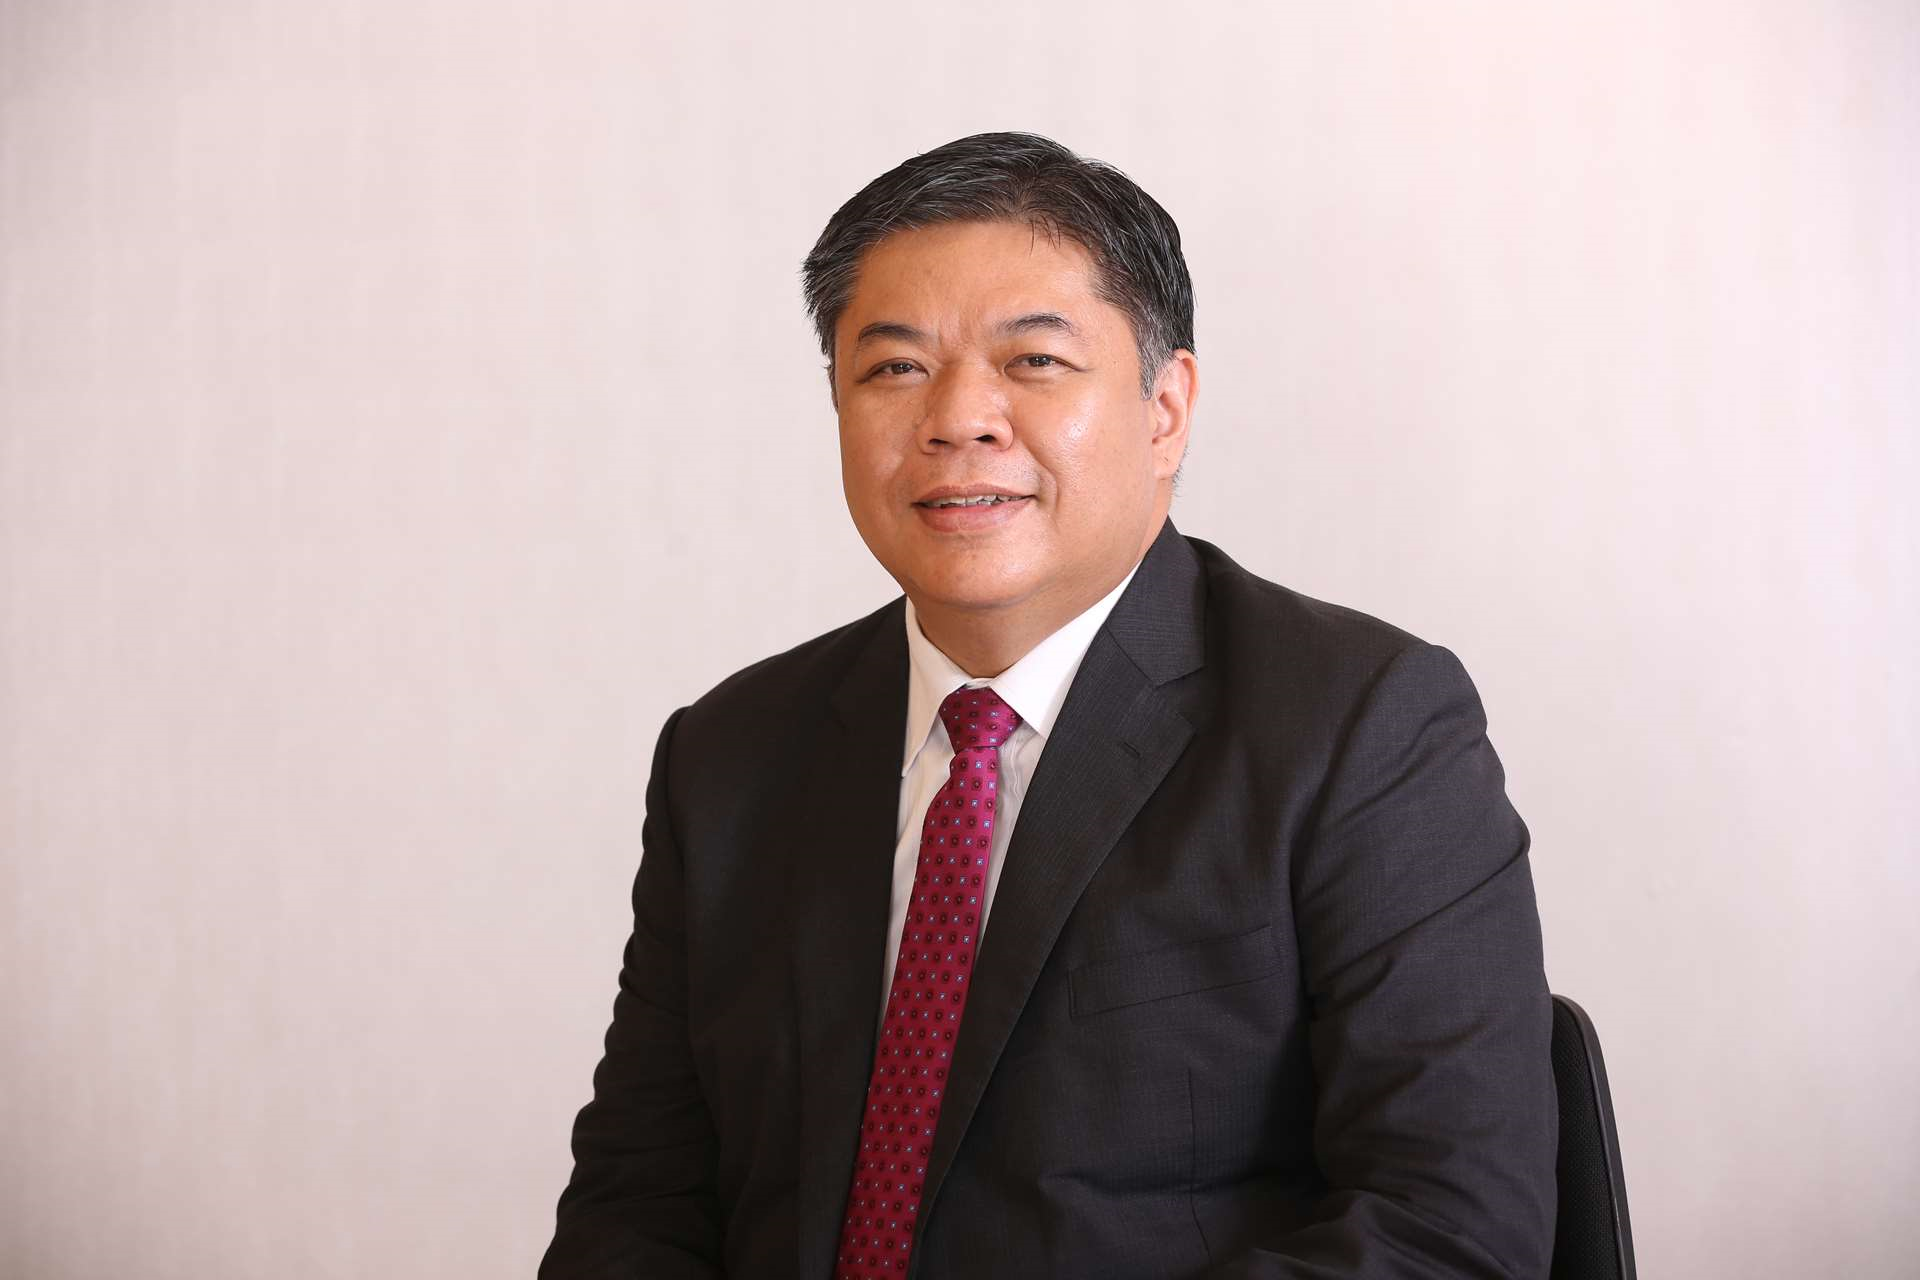 Tang Seng Choon , Partner, Audit & Assurance